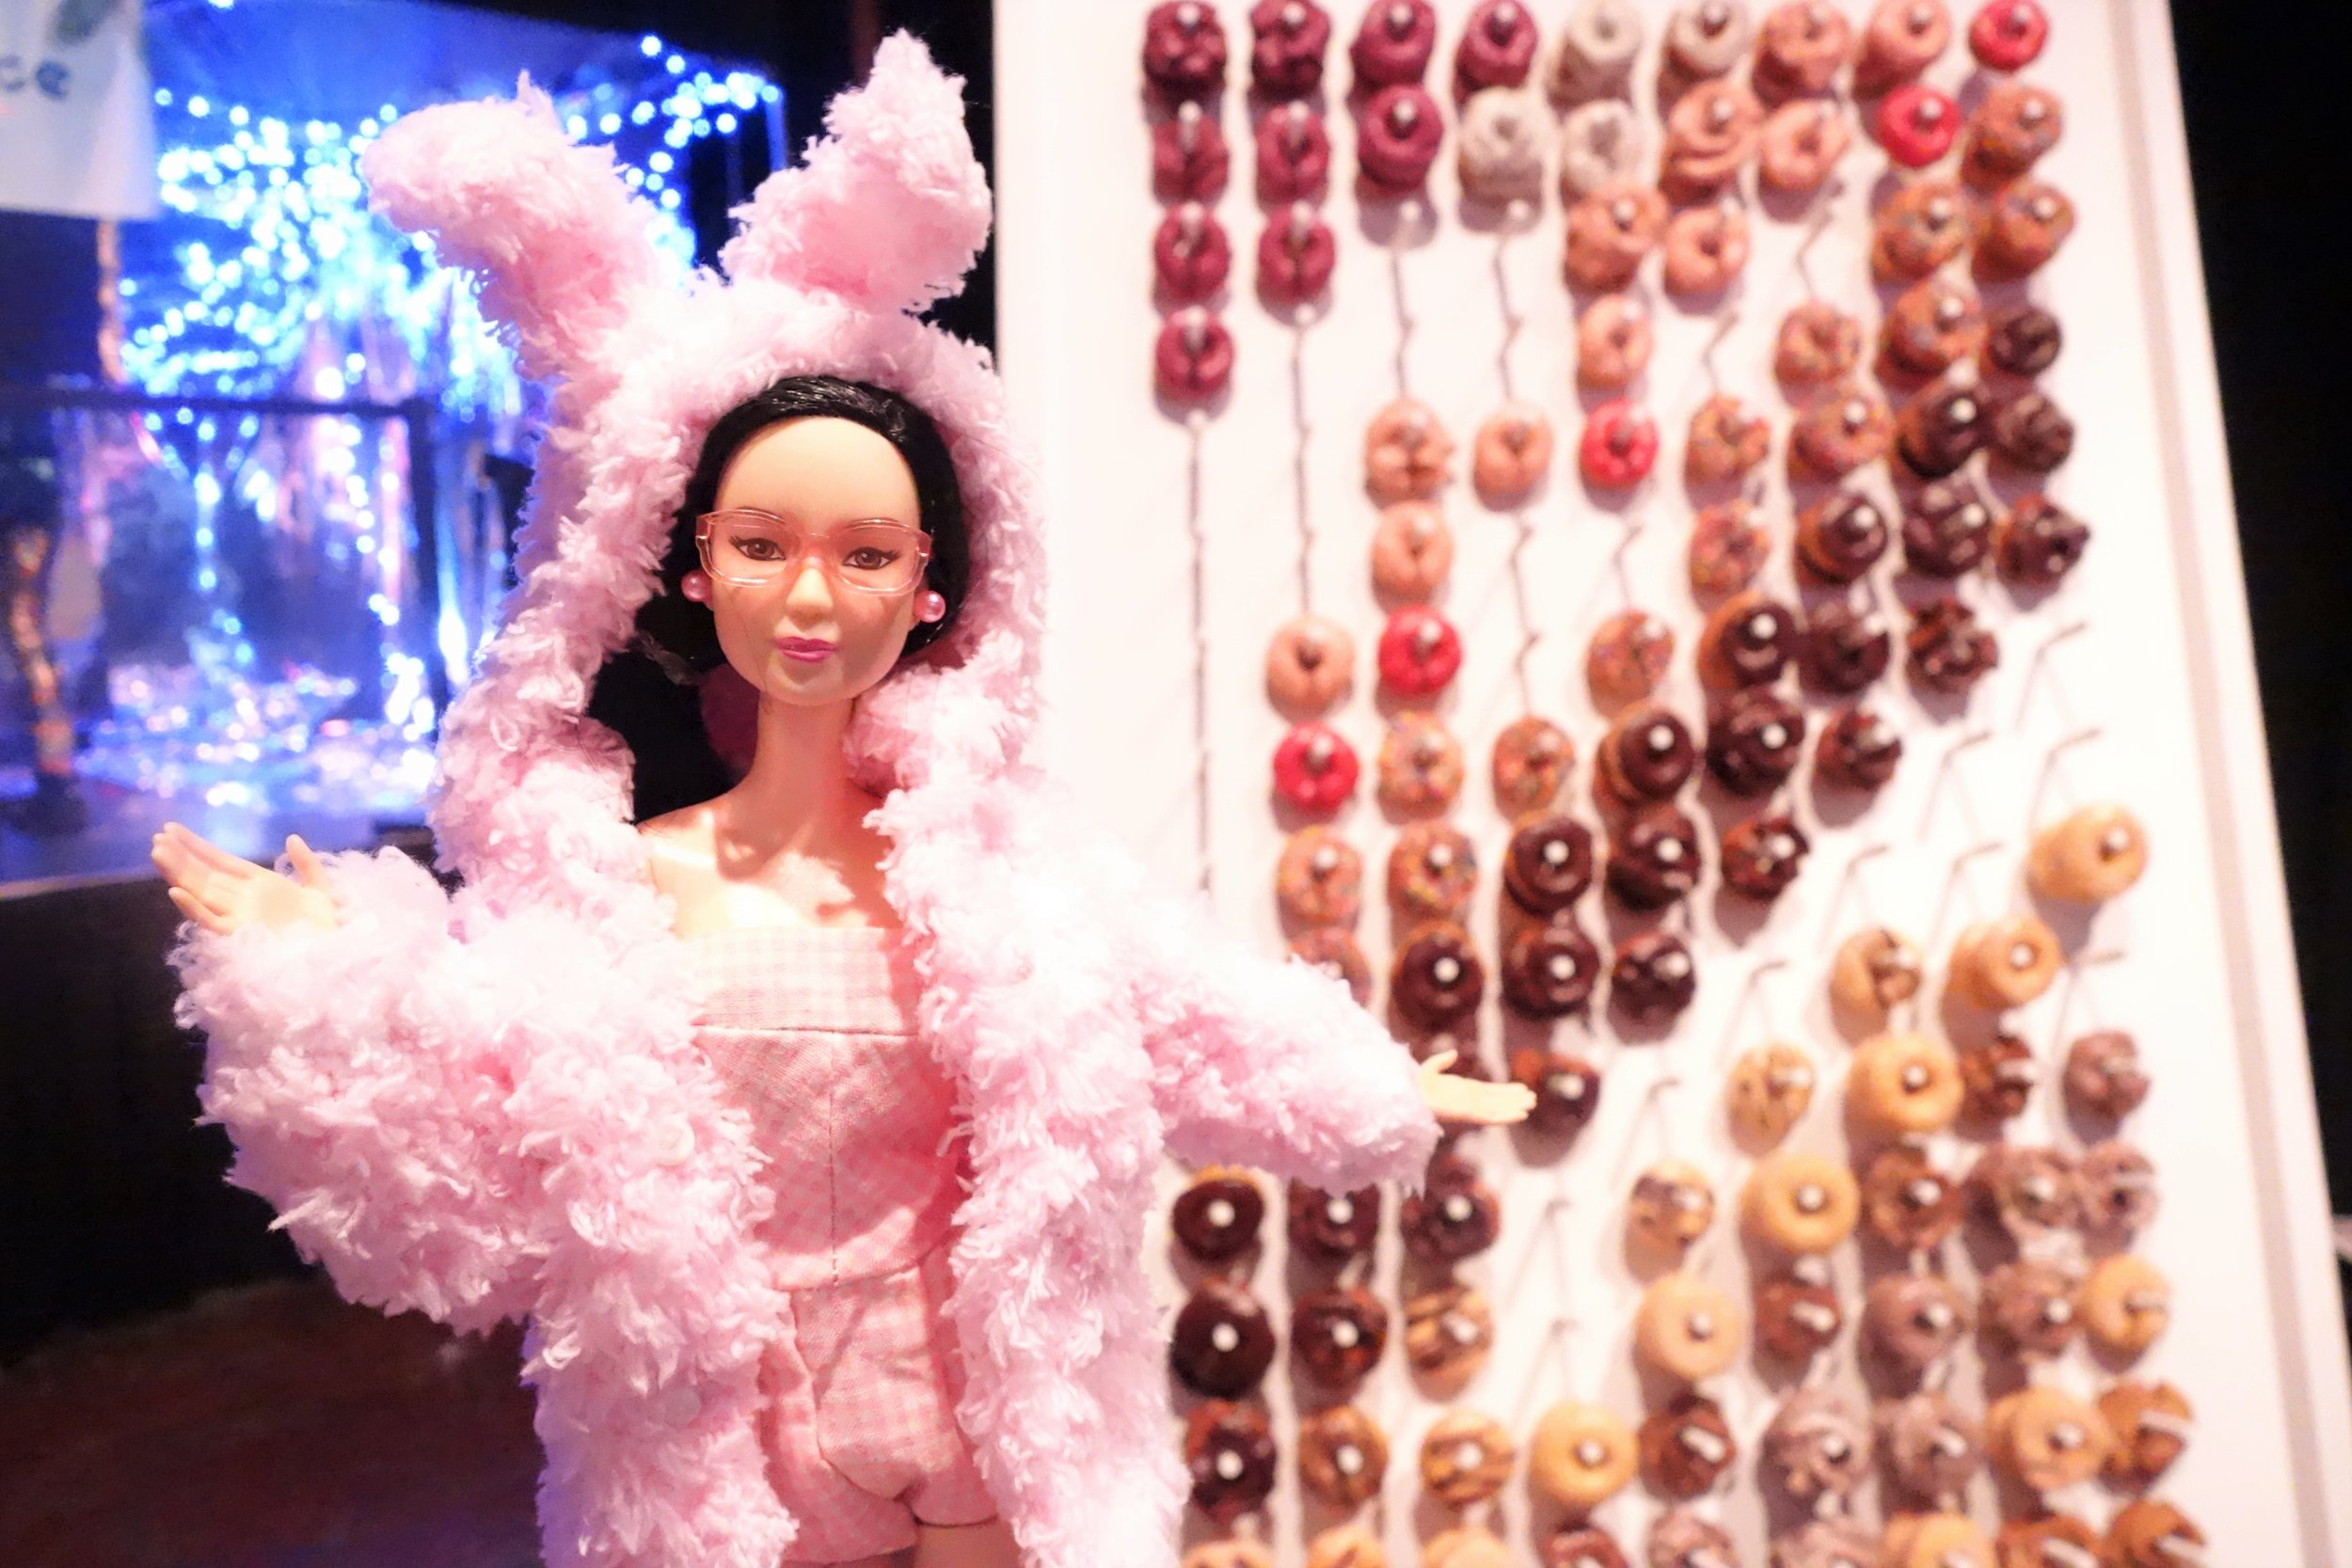 Foodie Barbie in front of the 10-foot doughnut wall by Johnny Doughnuts